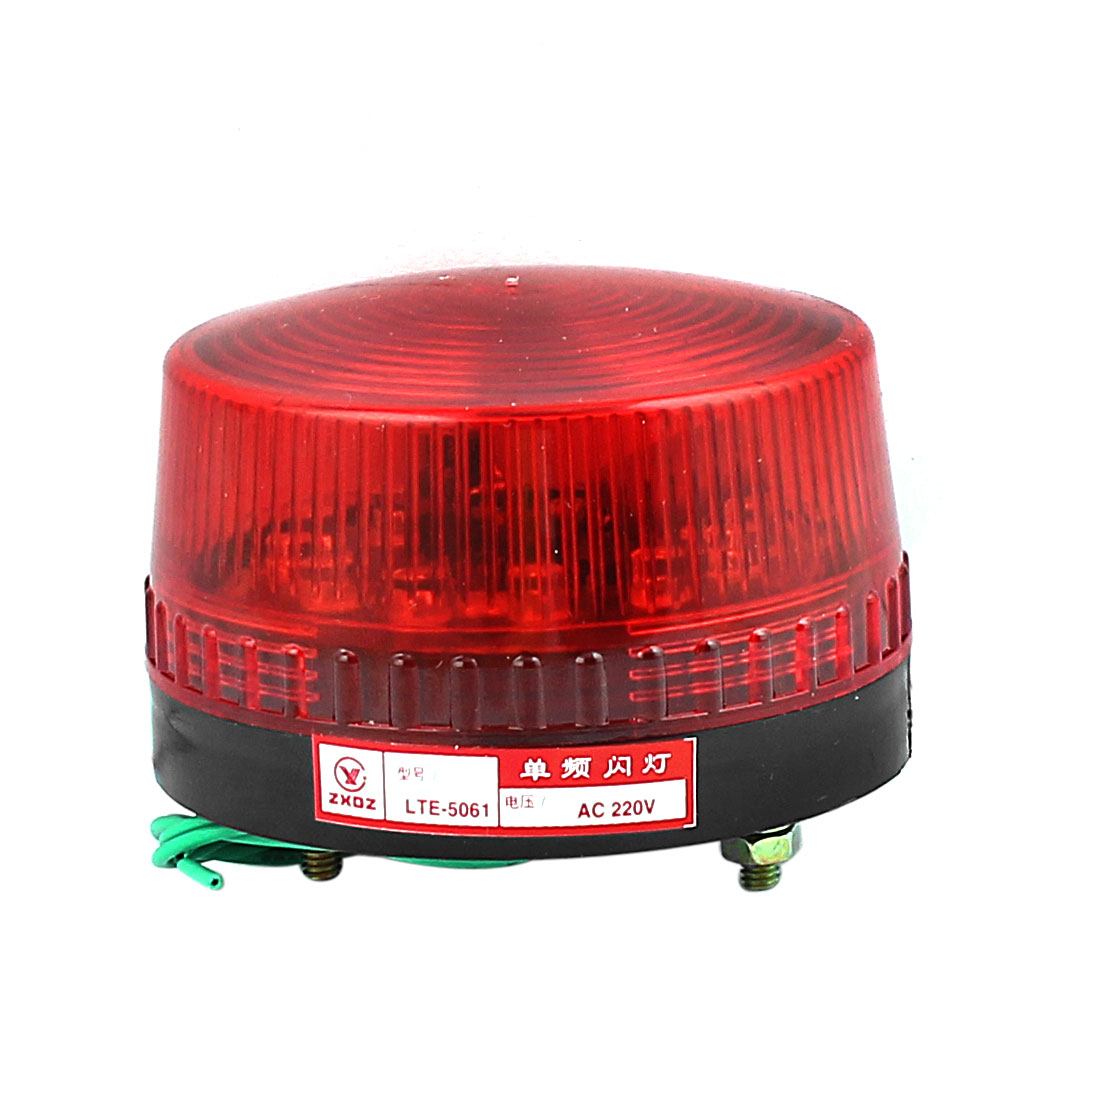 AC 220V Industrial LTE-5061 LED Flash Light Emergency Warning Lamp Red